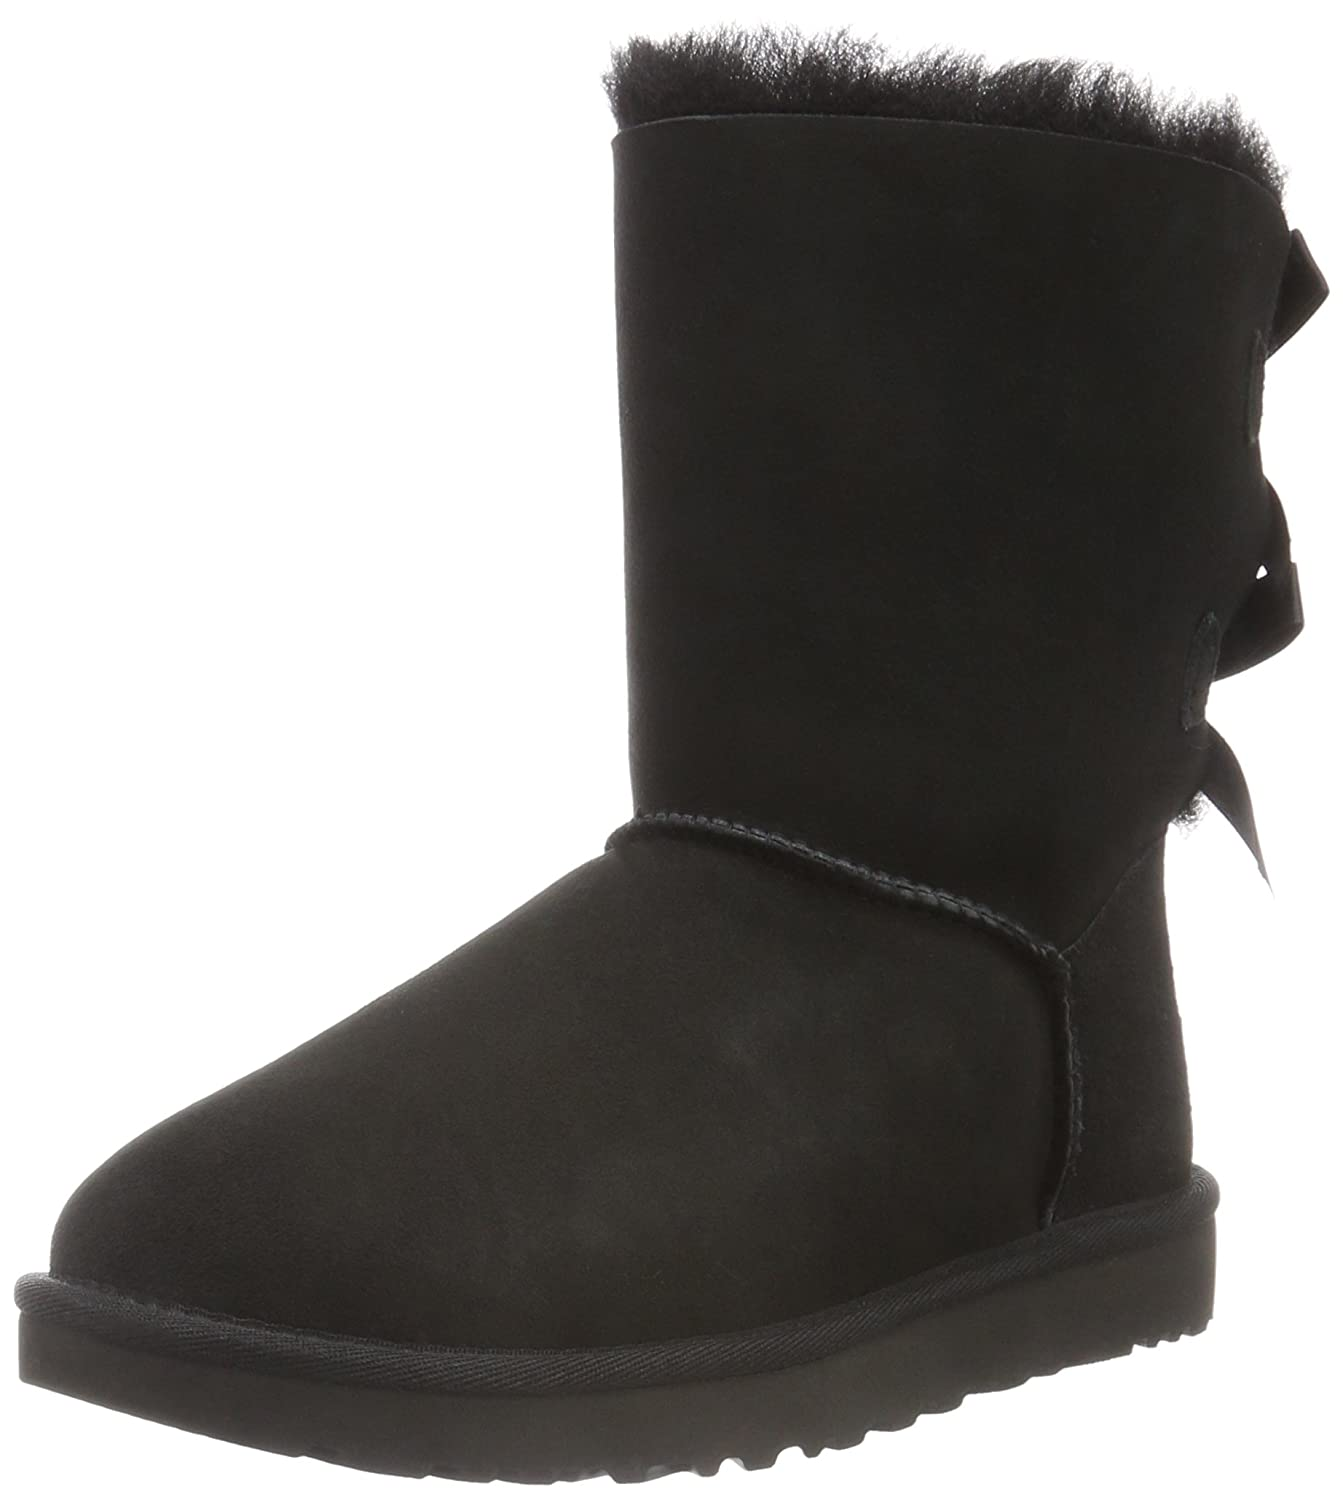 55316a03ce4 UGG Women's Bailey Bow II Winter Boot